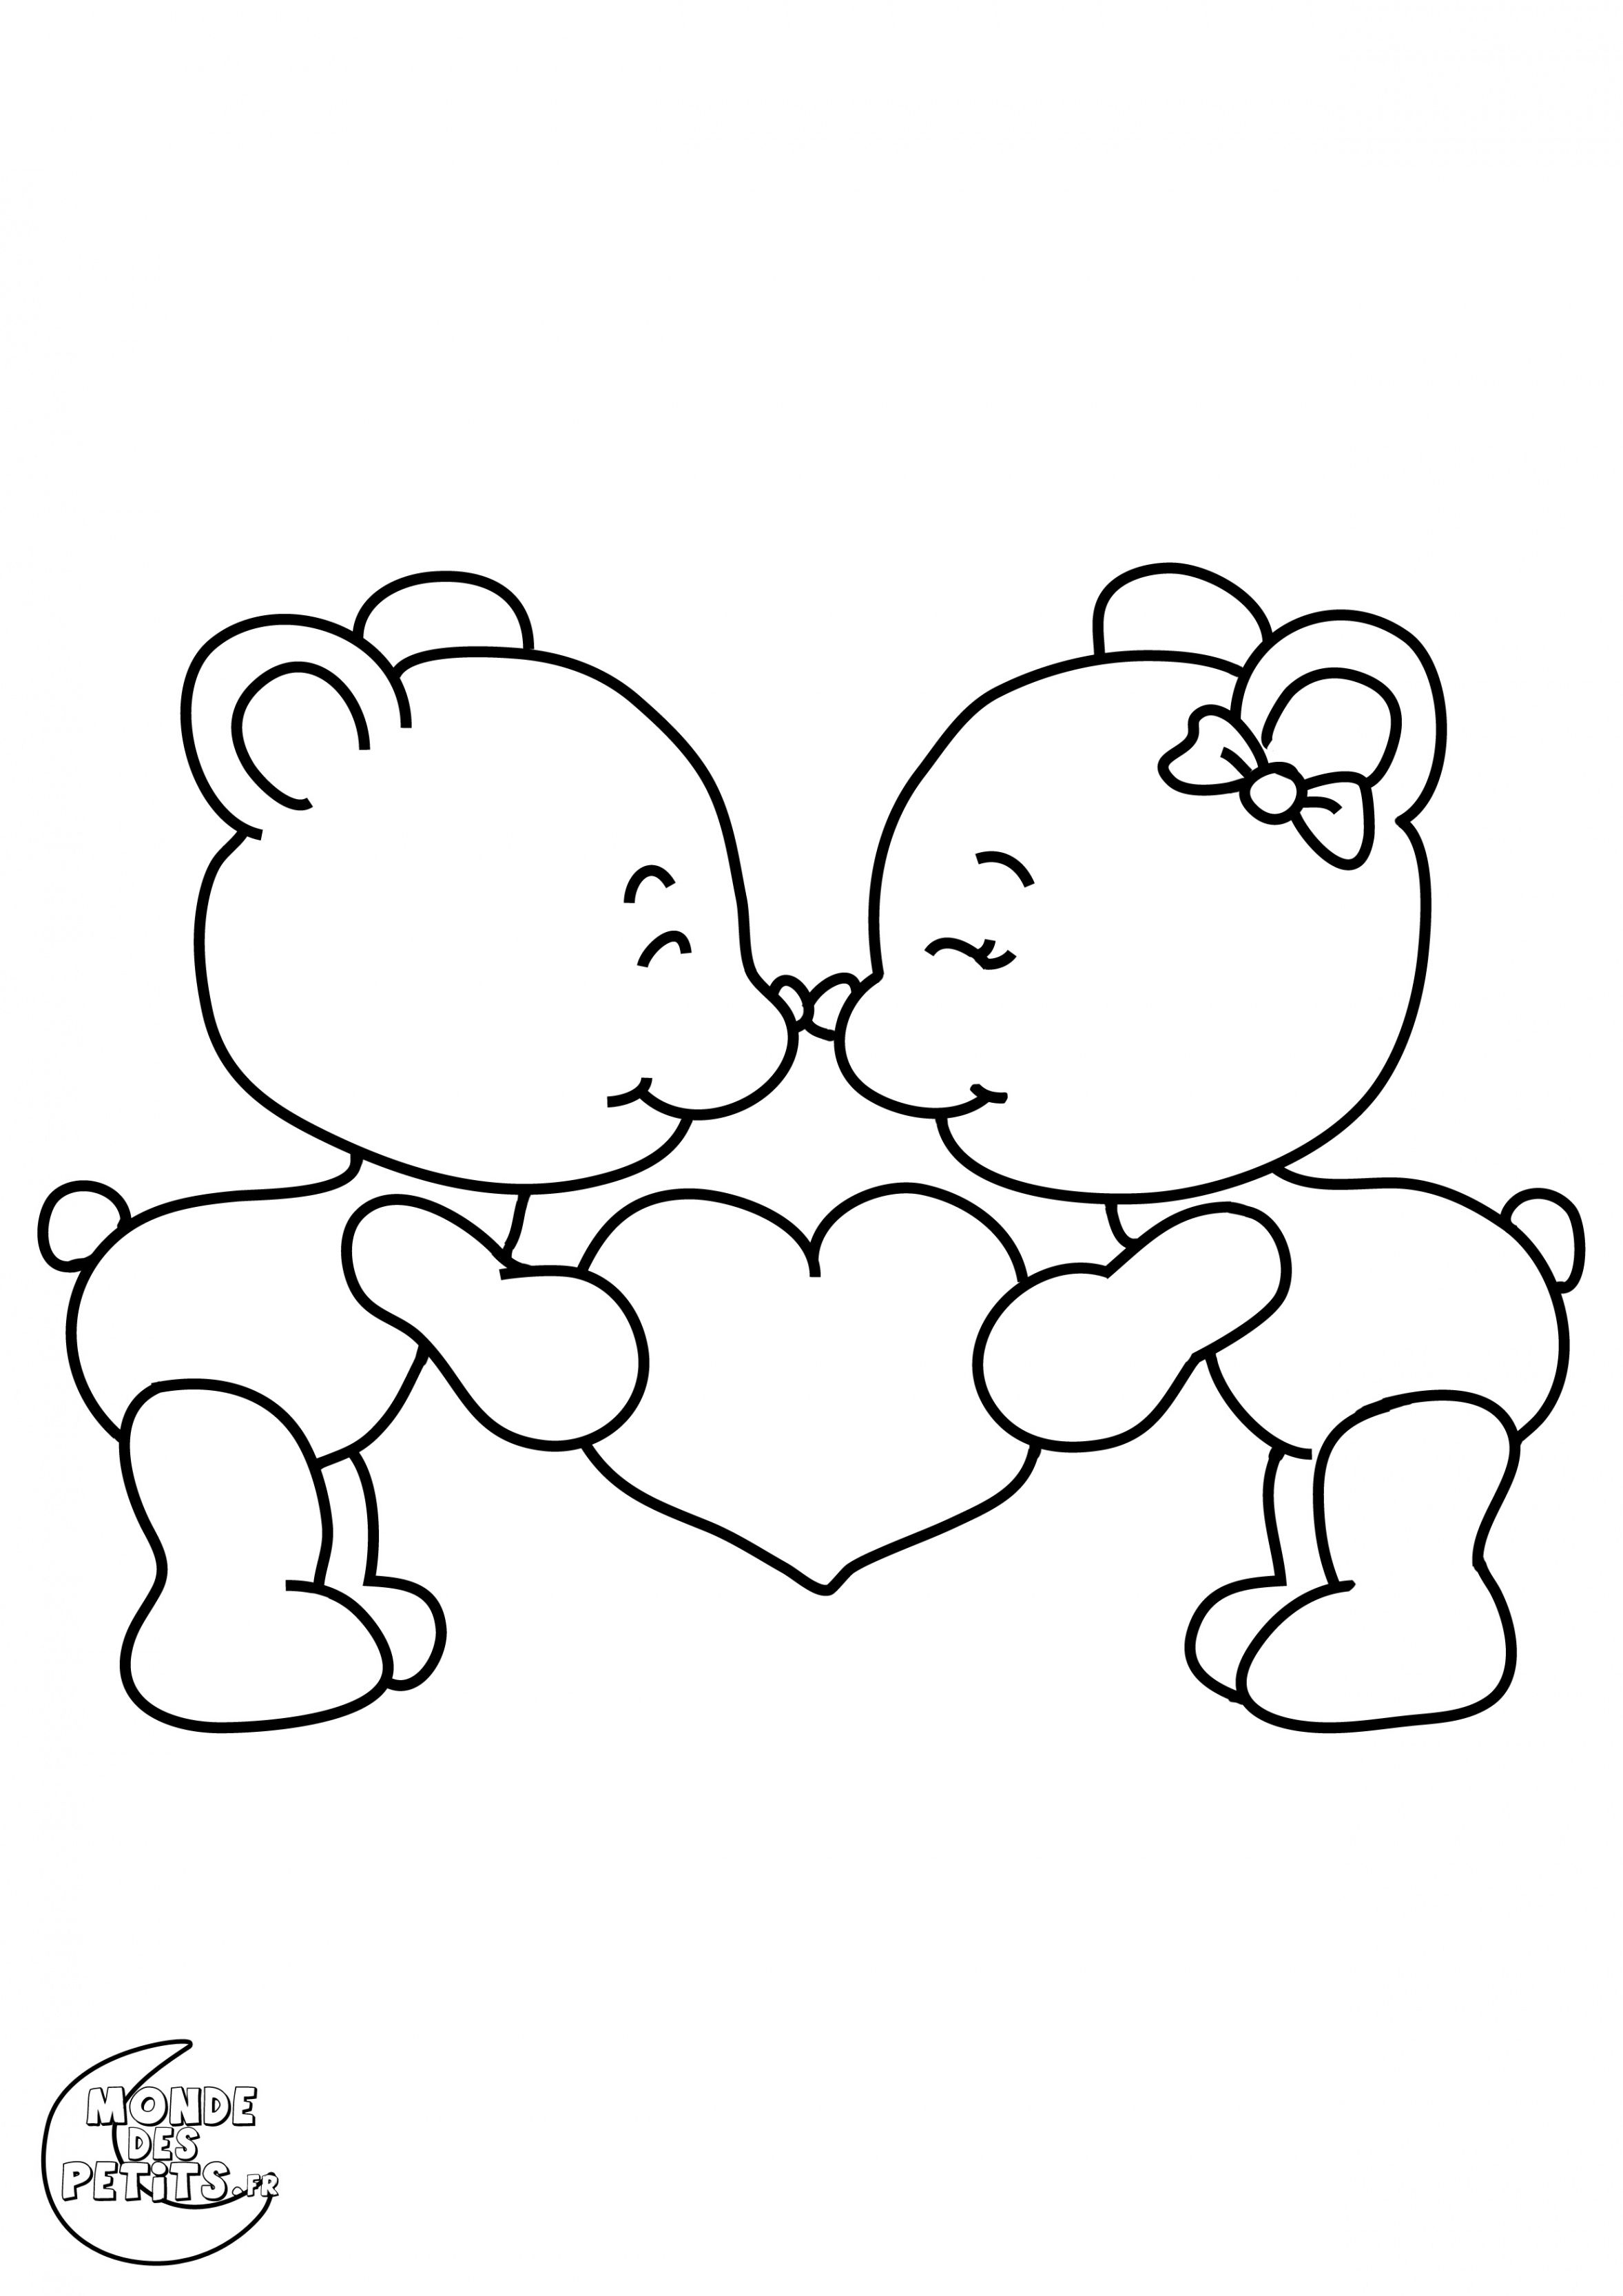 Coloriage St Valentin Gratuit | Baby art crafts, Valentine day cards, Art drawings simple